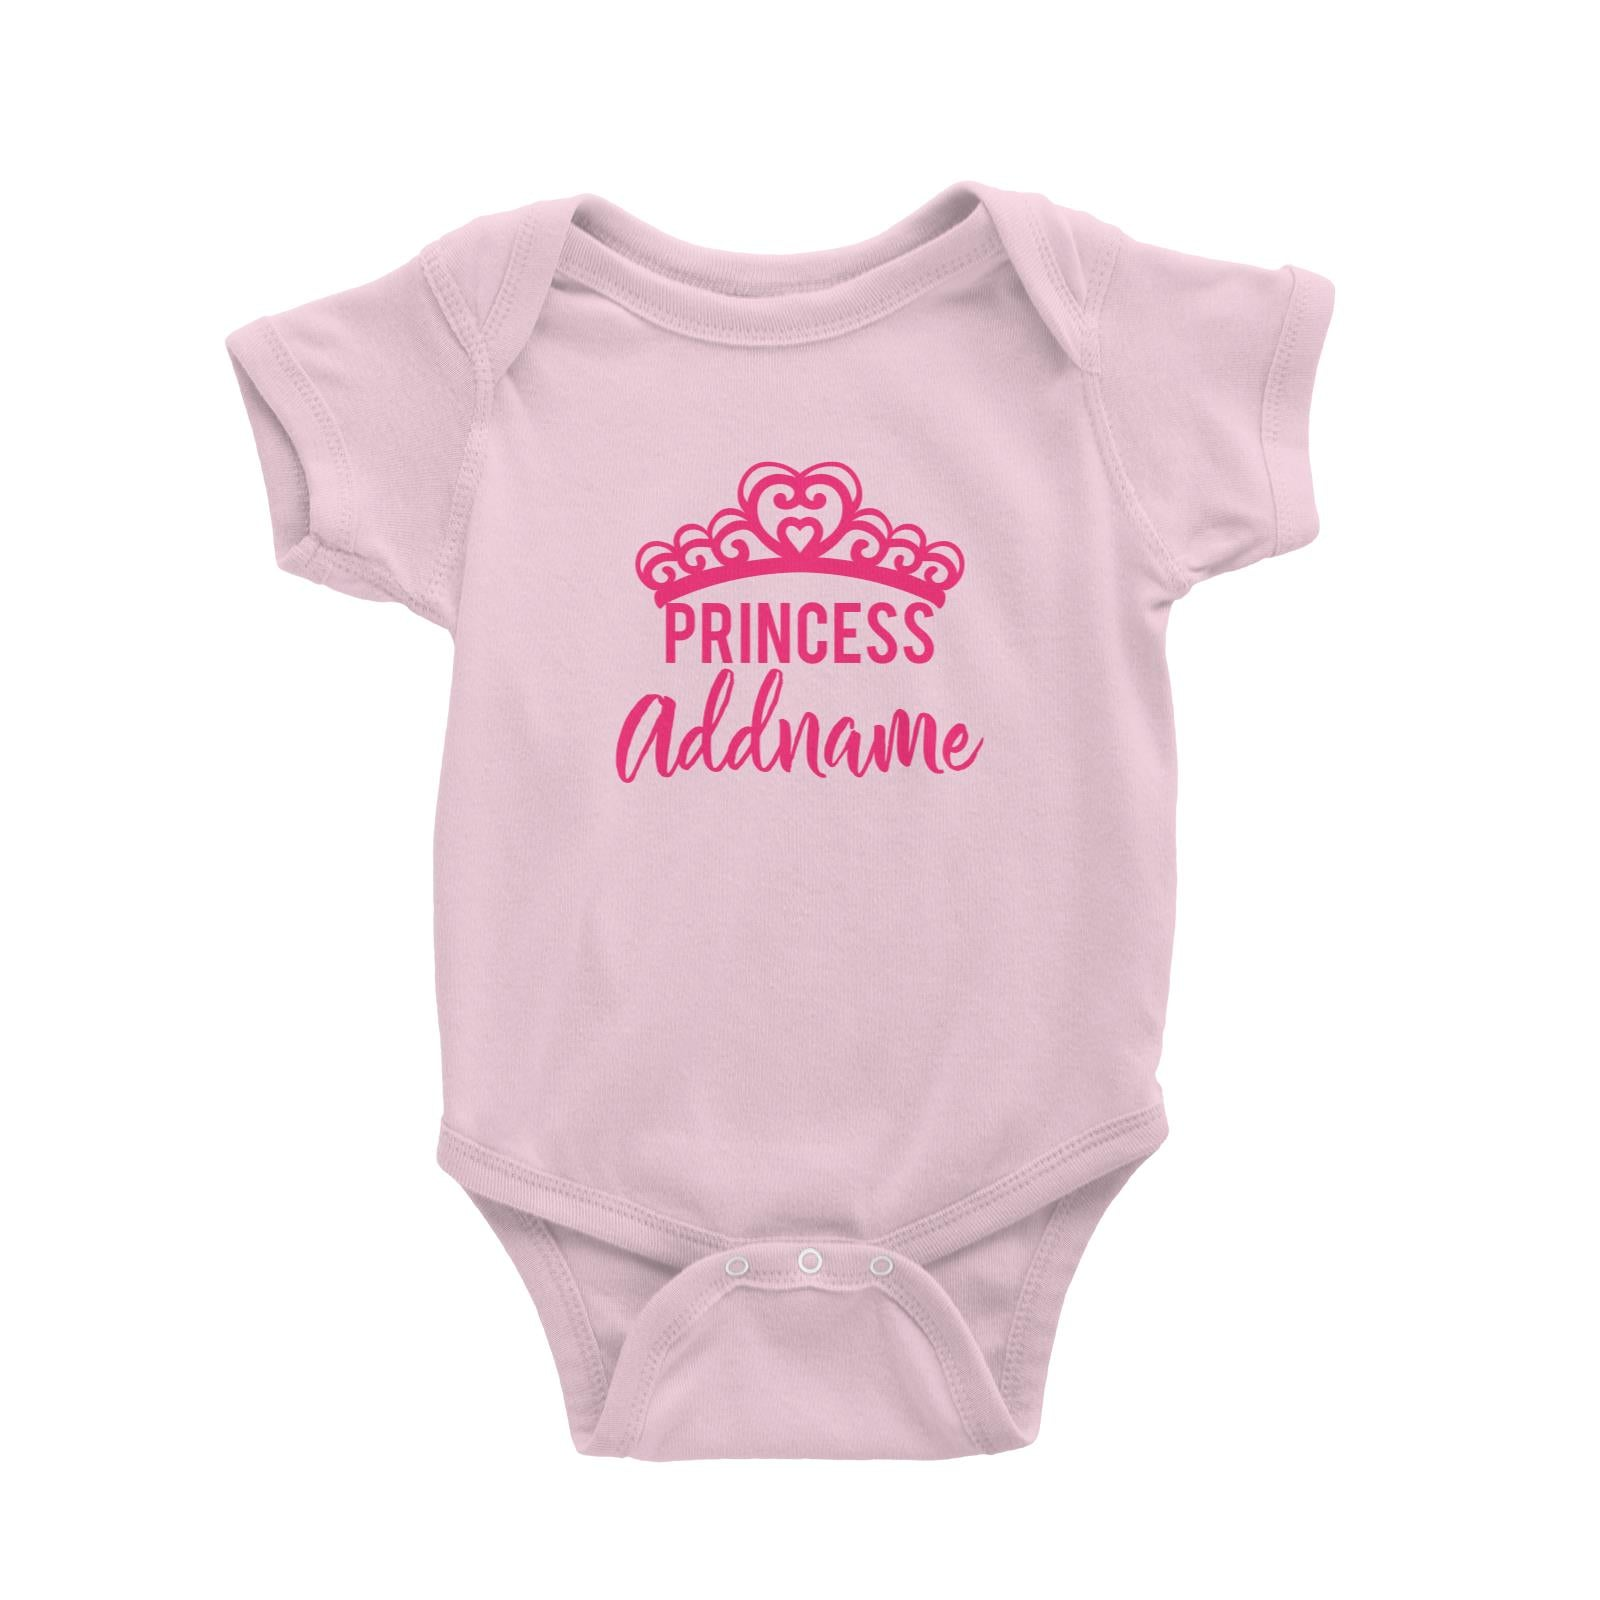 Babywears.my Princess Addname with Tiara T-Shirt Pinky Personalizable Designs